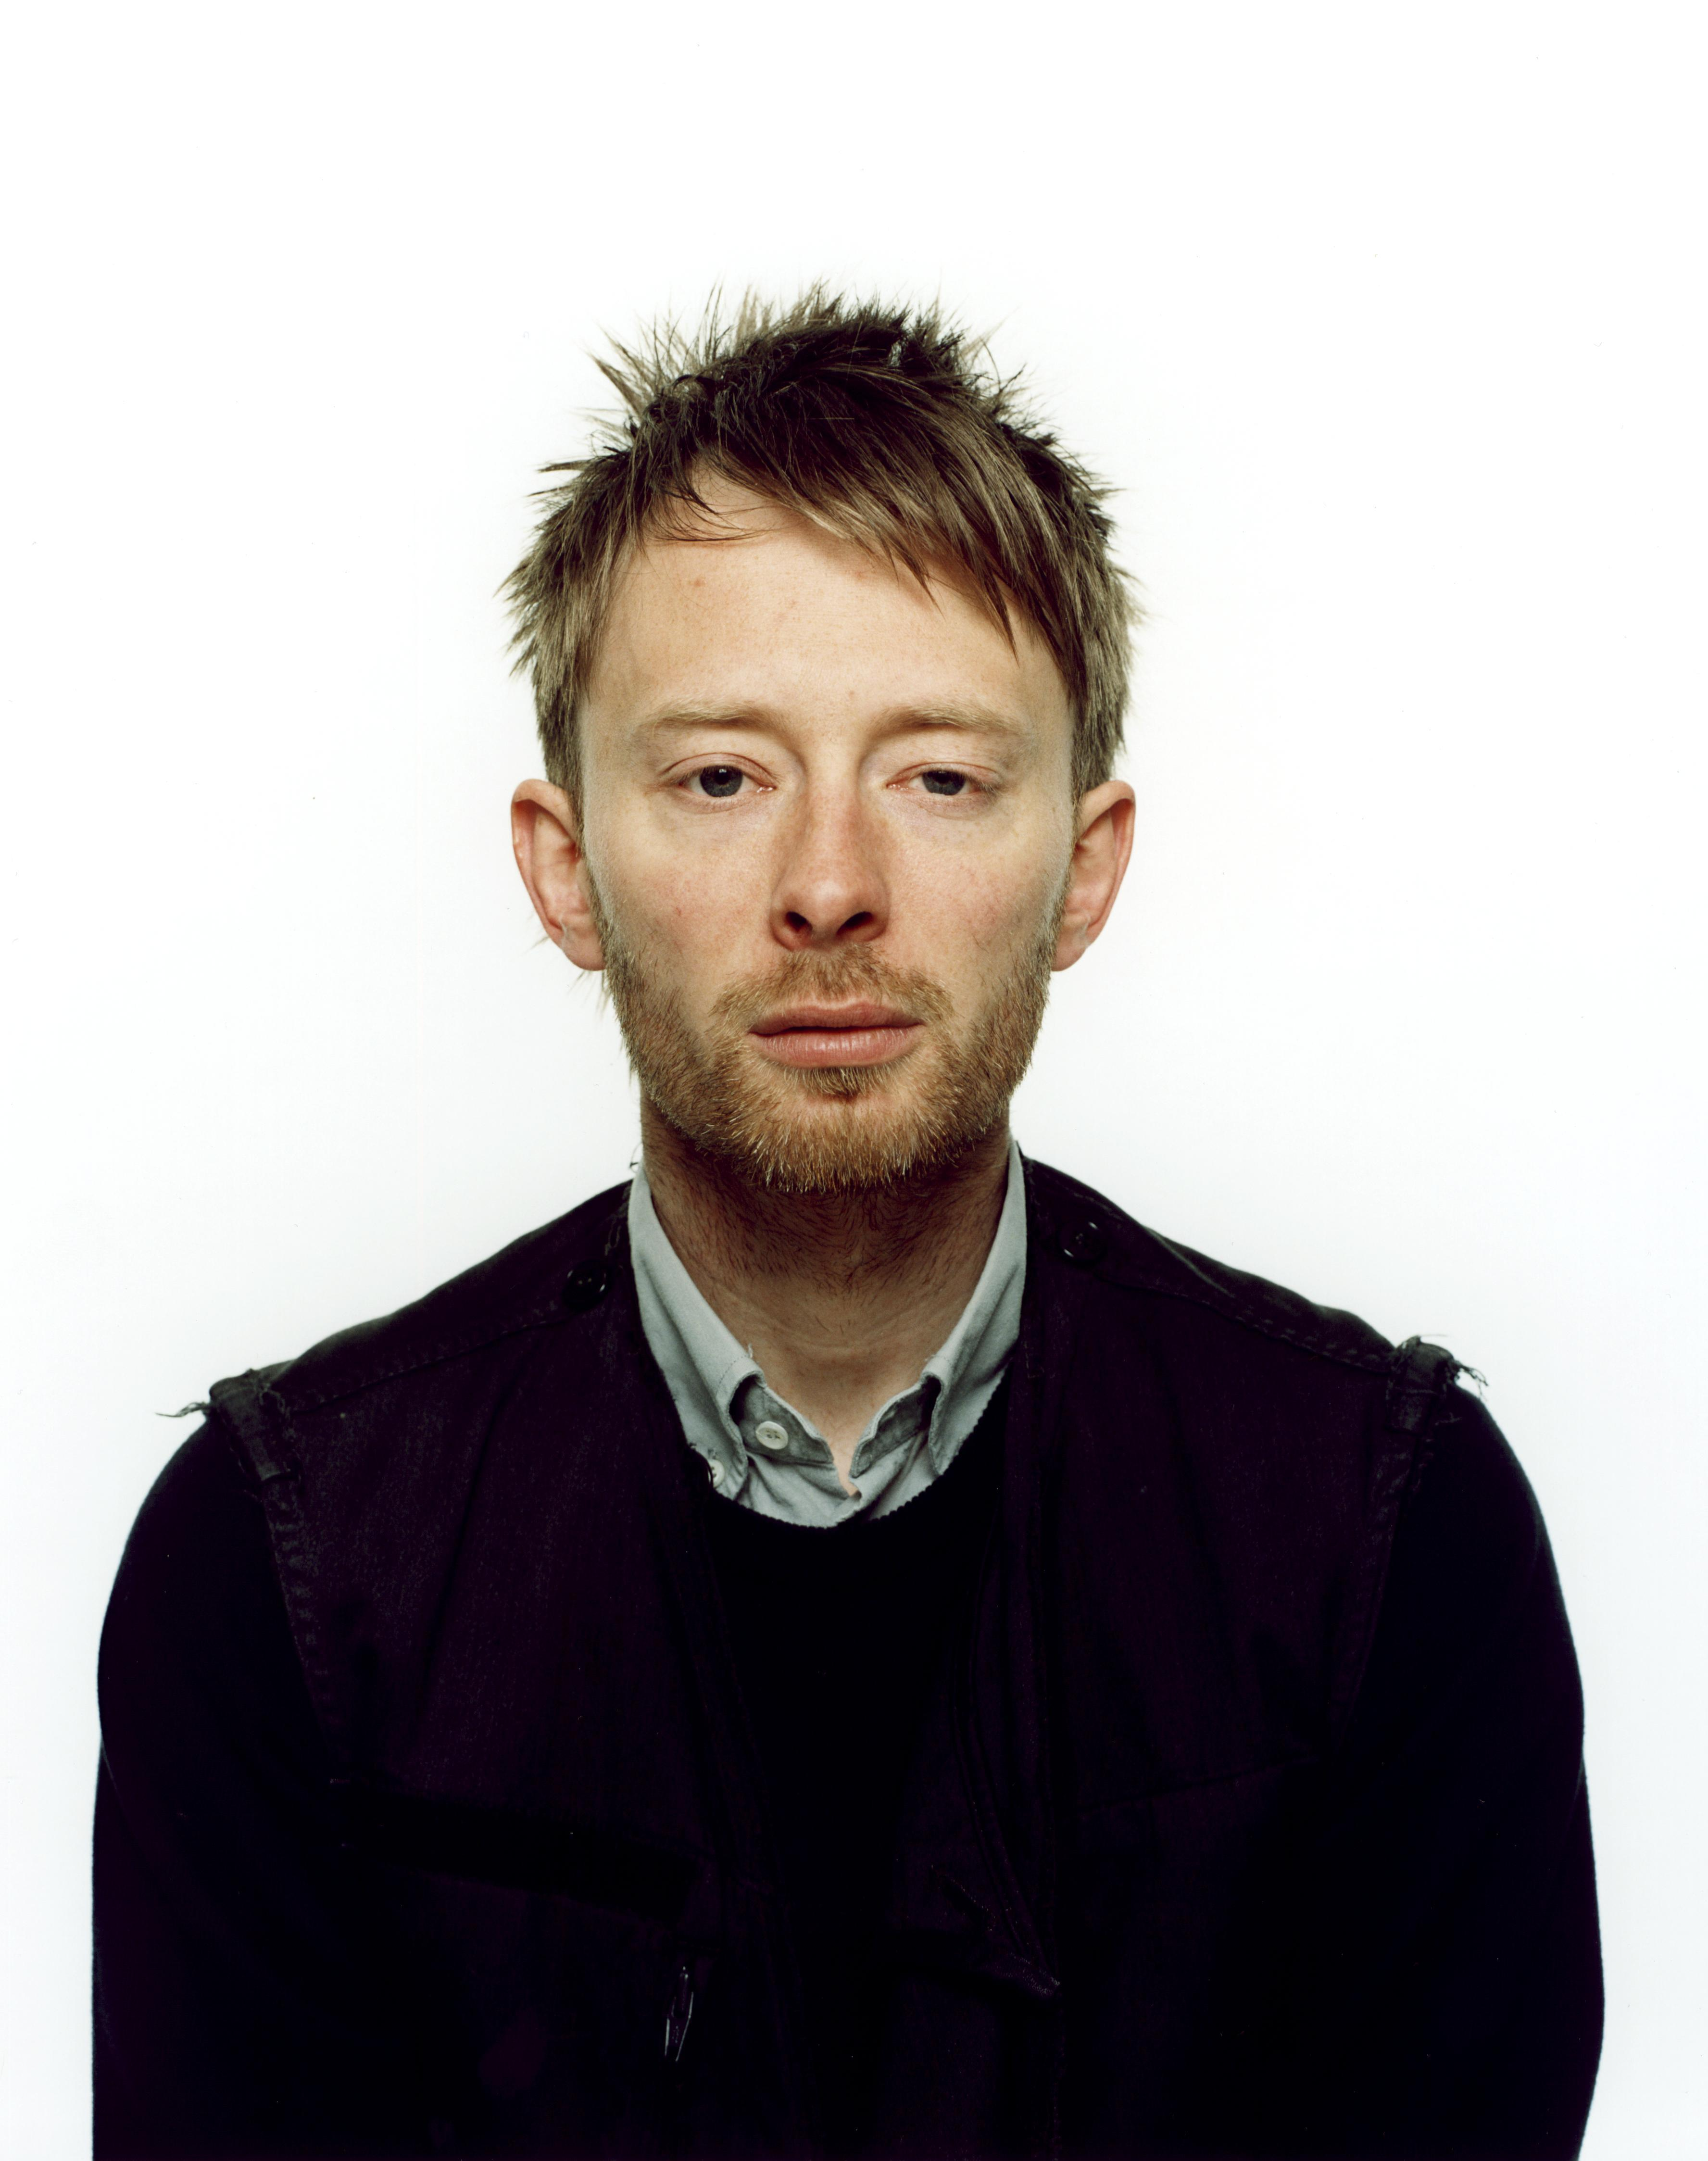 radiohead portraits HD Wallpaper